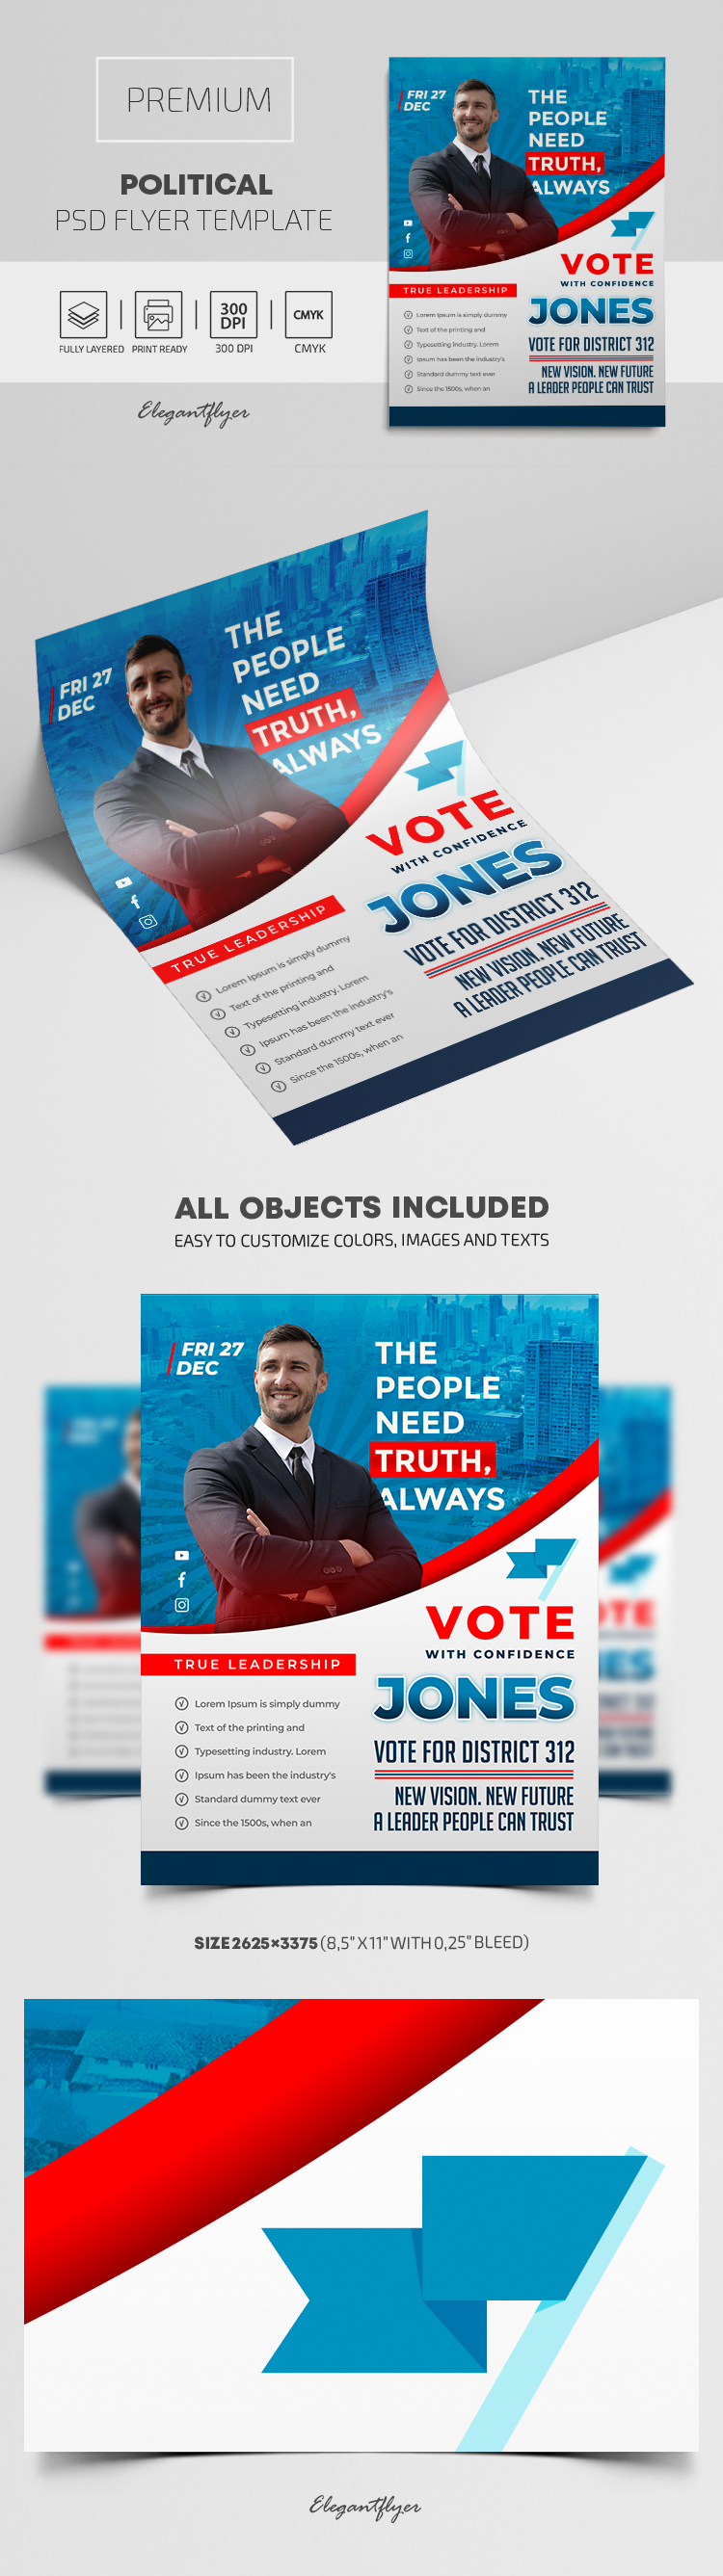 Political – Premium PSD Flyer Template